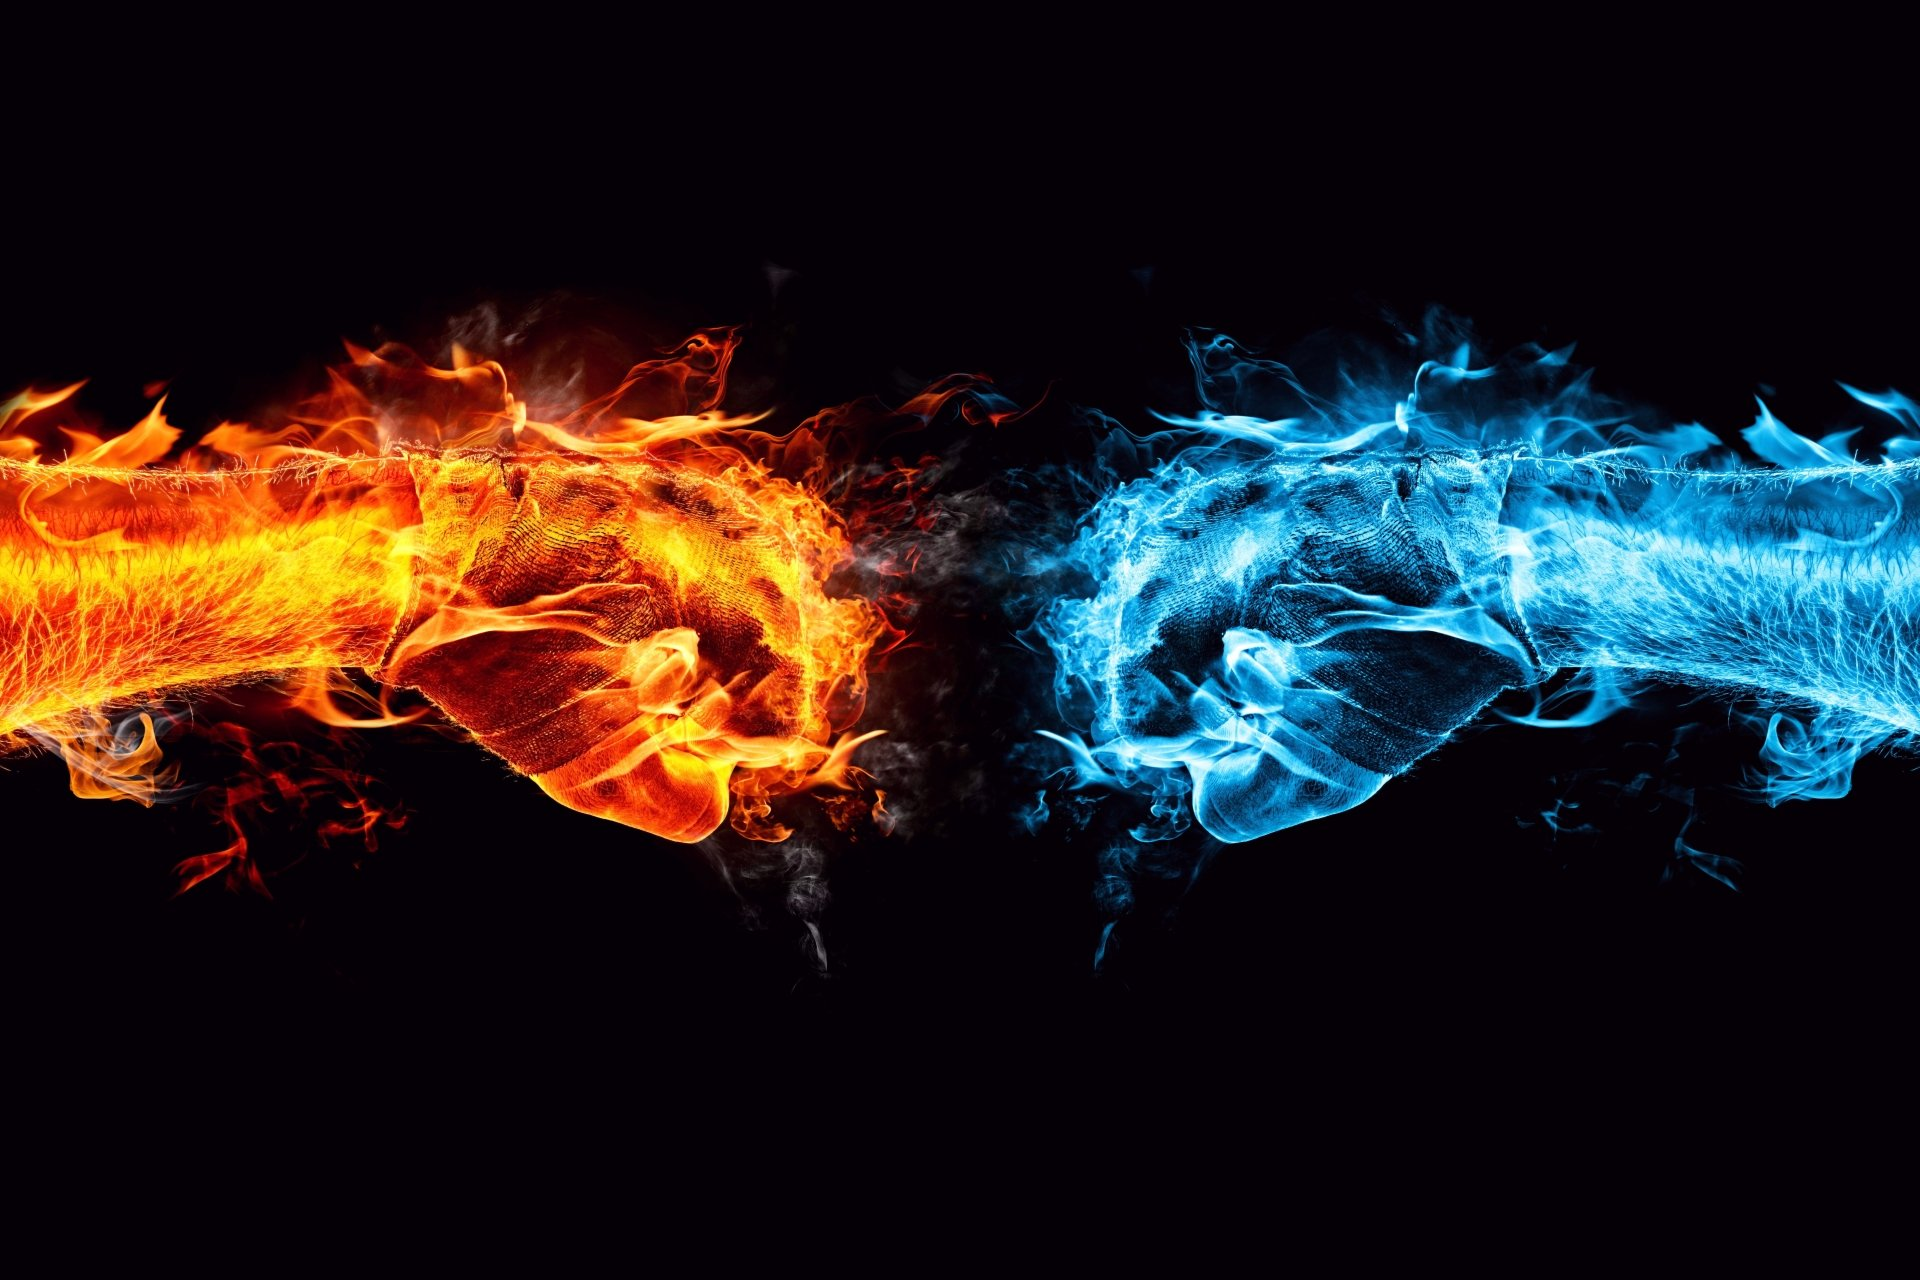 430 Cool Hd Wallpapers Background Images Wallpaper Abyss